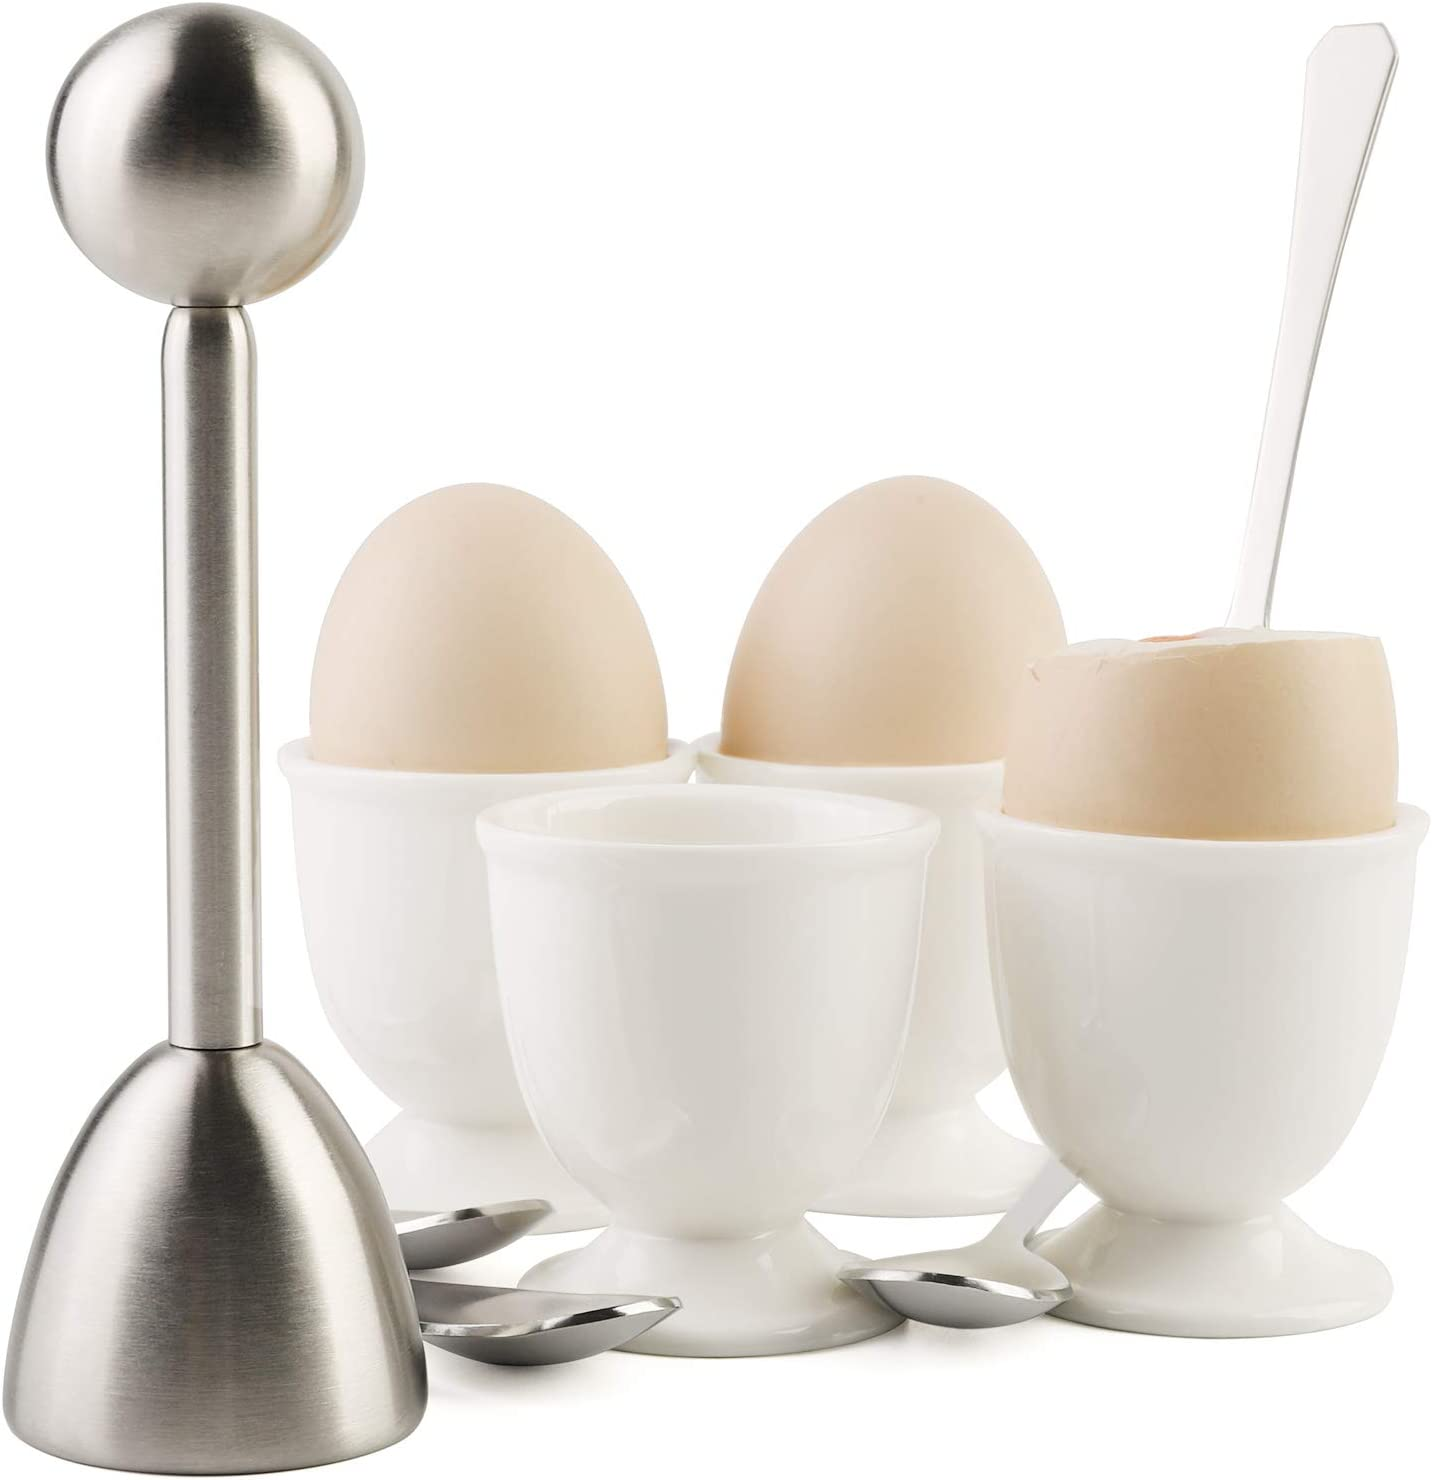 Egg Cracker Topper Set for Soft Hard Boiled Eggs Shell Removal Includes 1 Egg Cutter 4 Ceramic Egg Cups and 4 Spoons